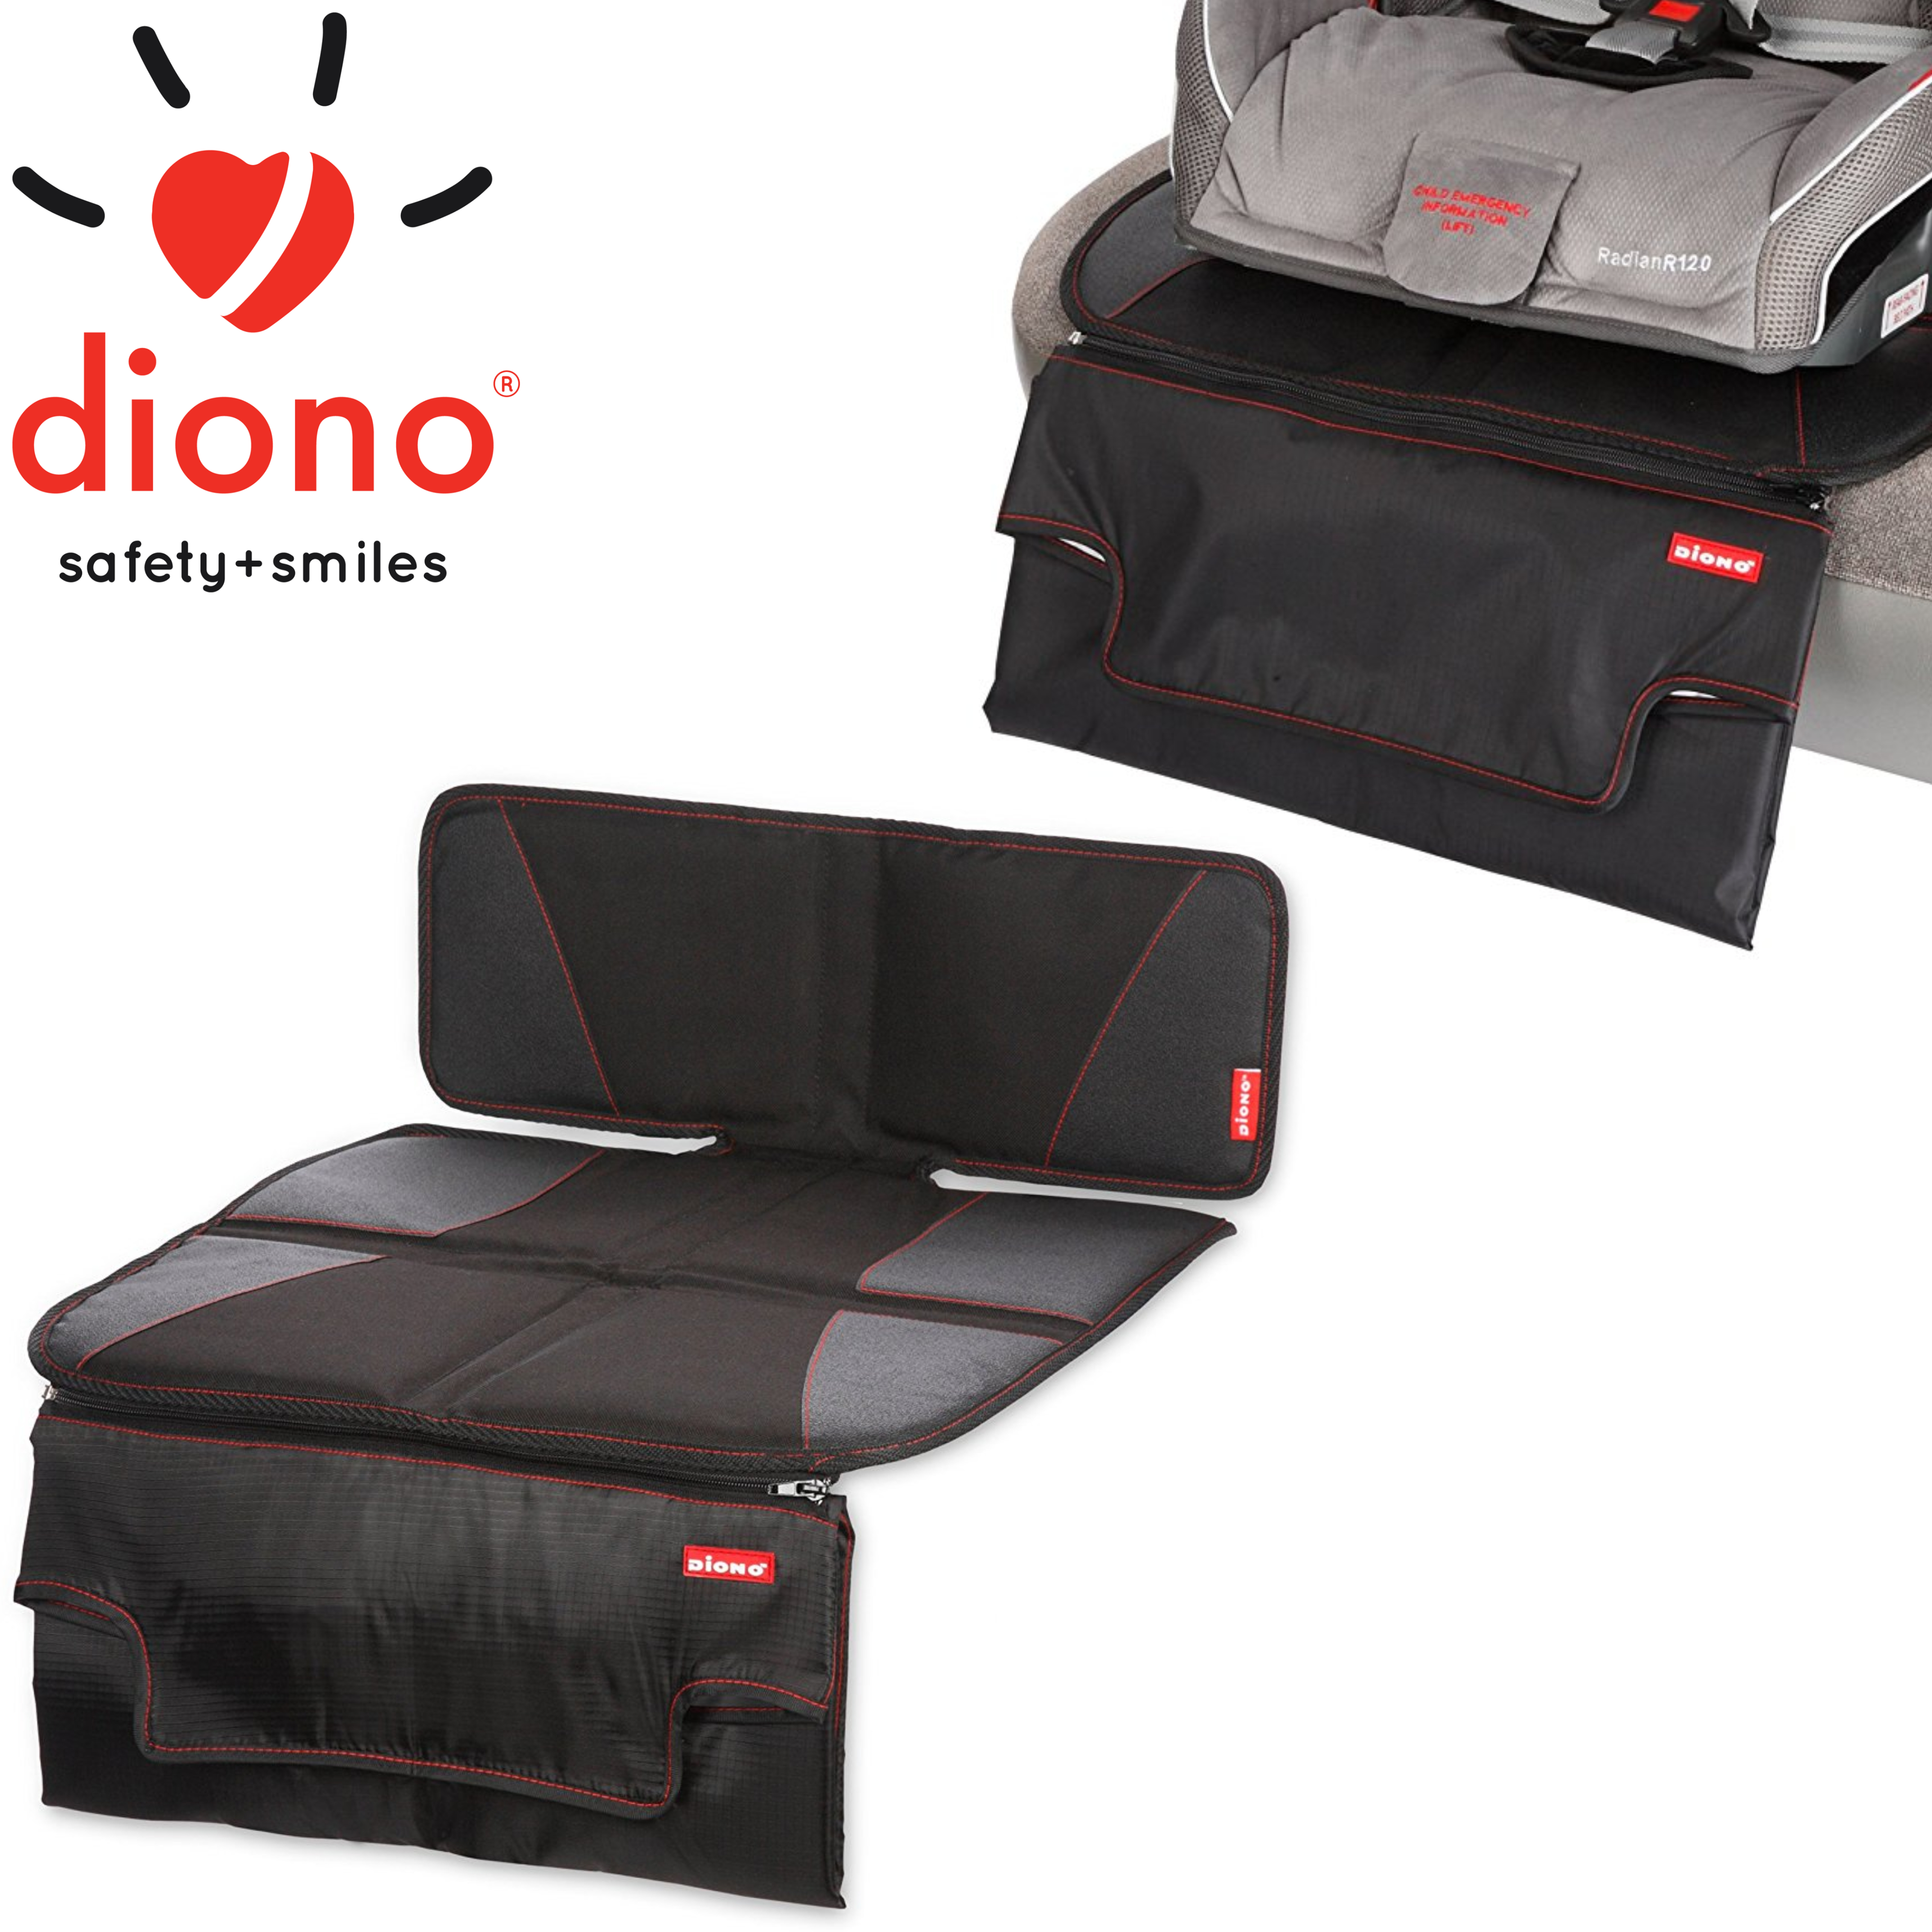 Diono Super Mat Deluxe Double Layer Seat Protector With Zip Off Changing Mat | New